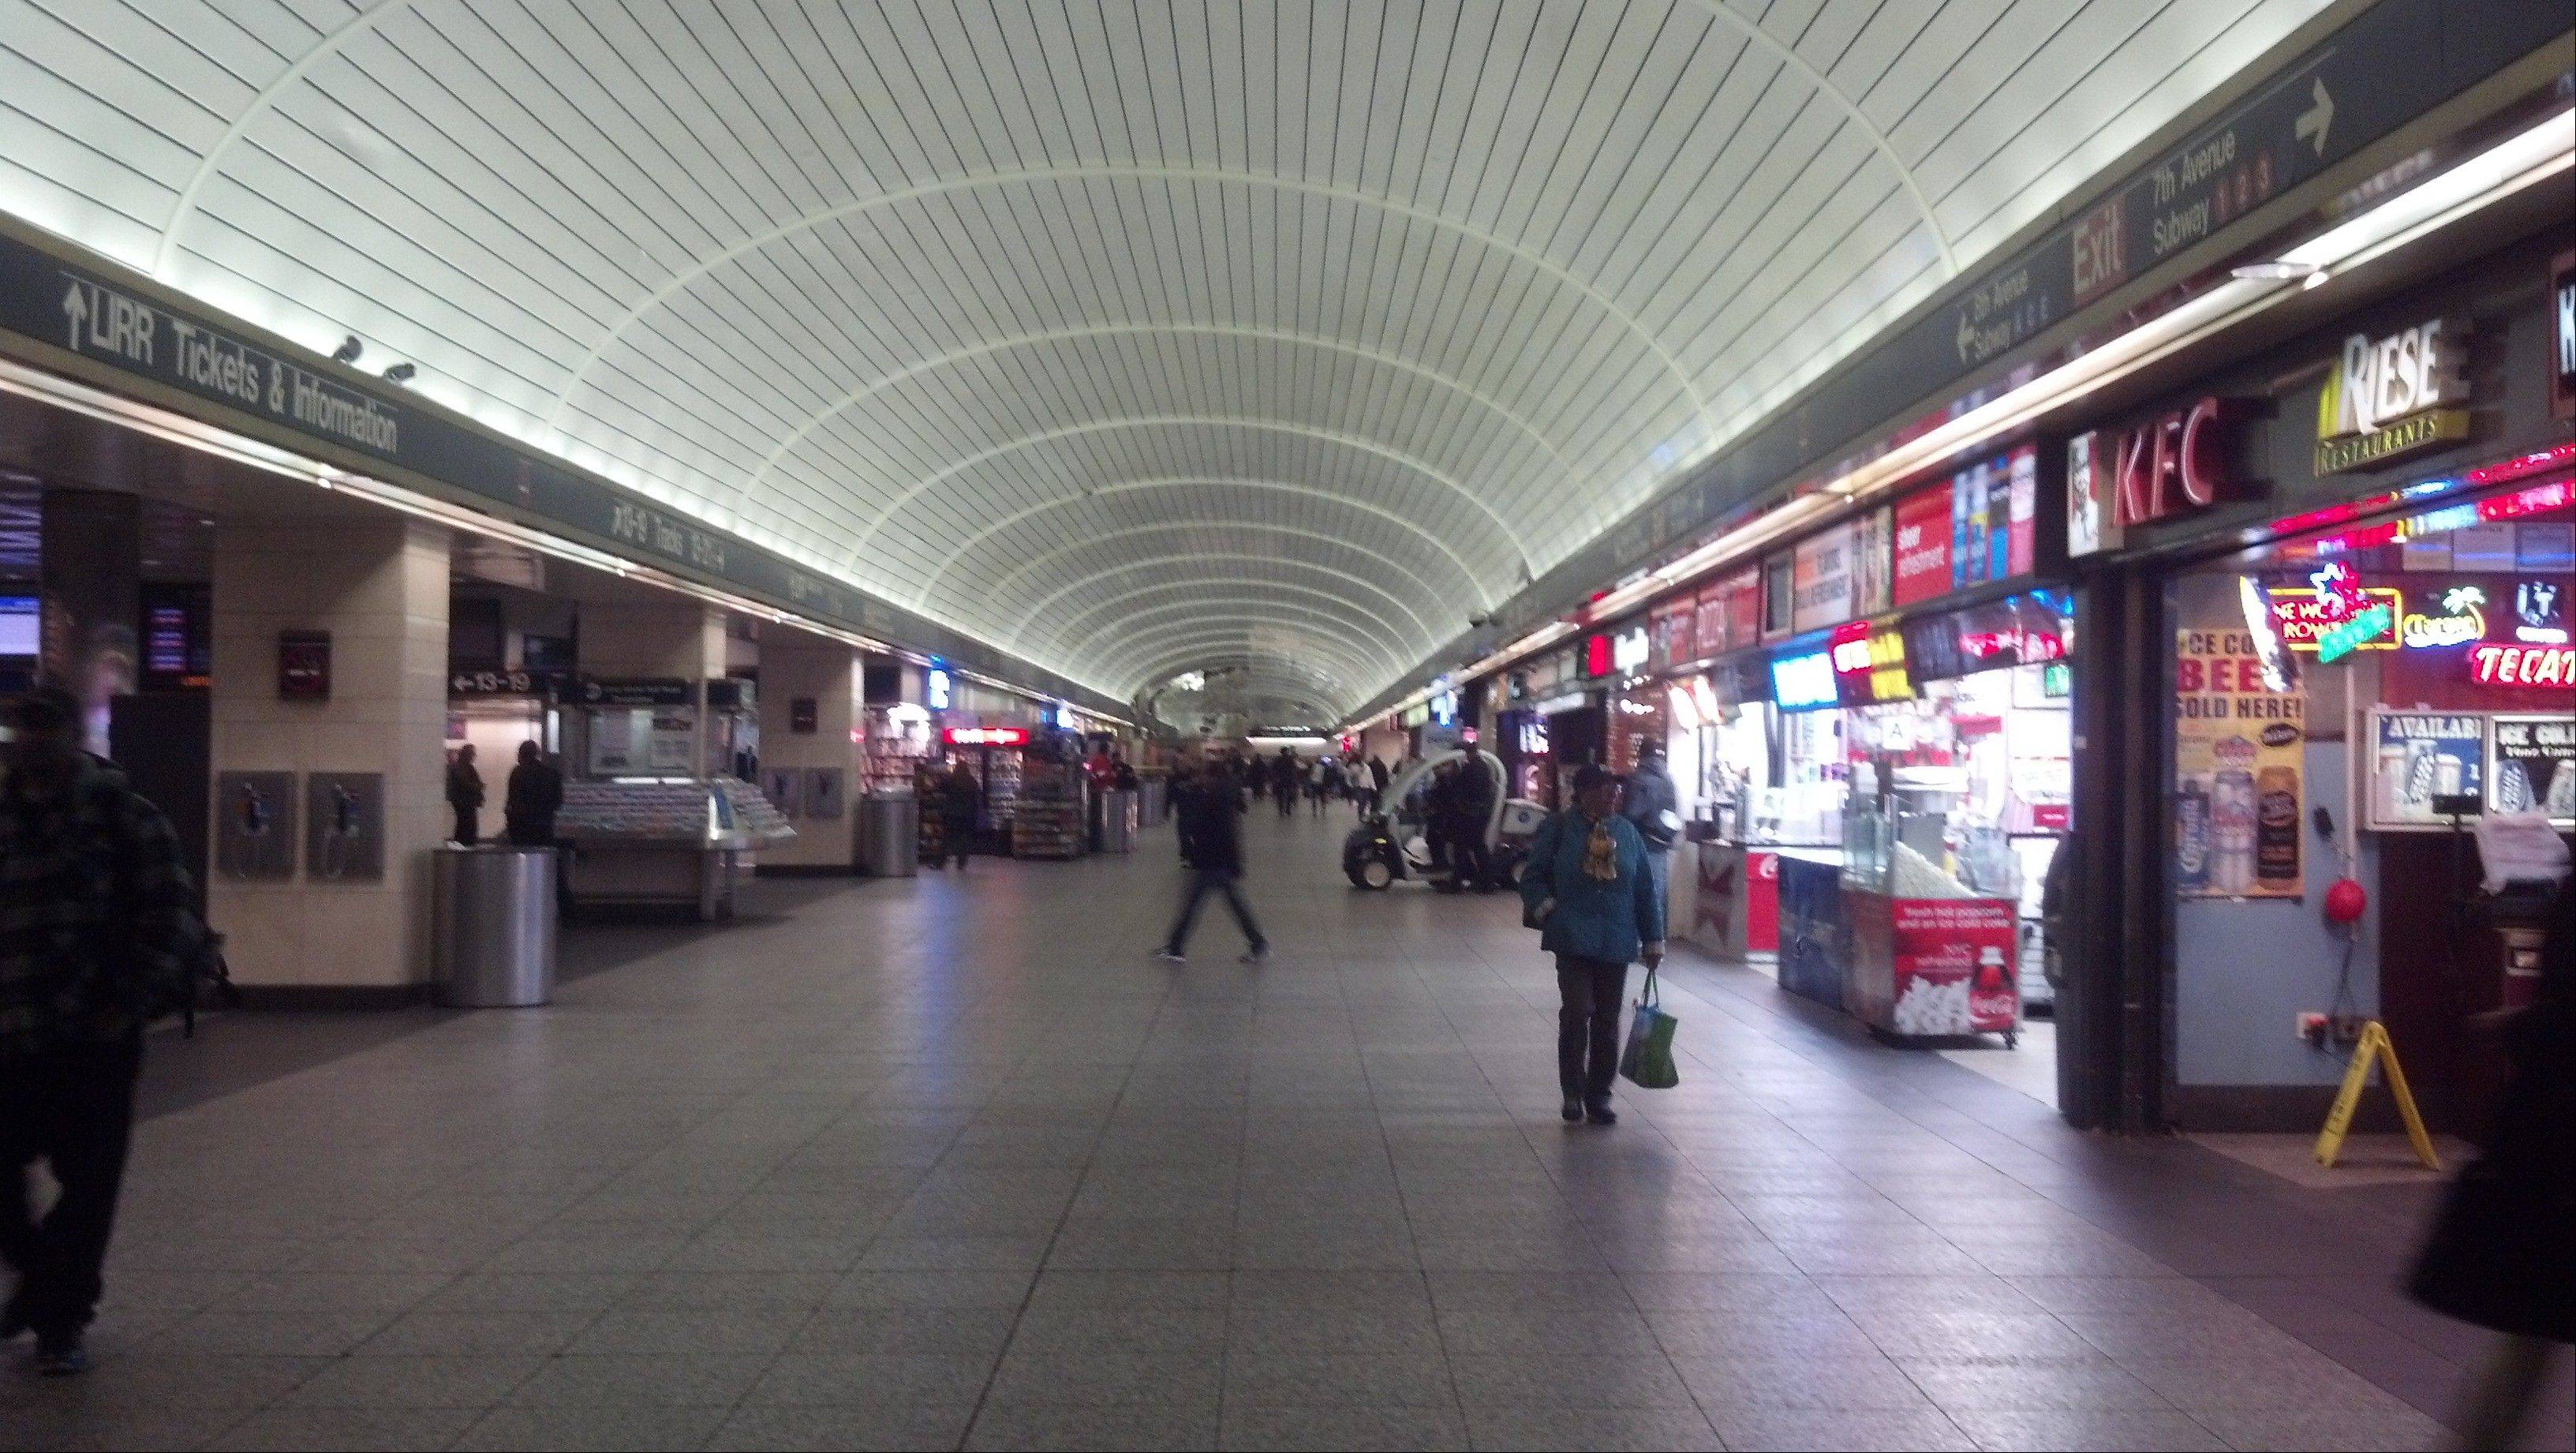 Morning commuters walk through a near empty Penn Station in New York, during the morning rush hour on Thursday. As commuters tried to get back to a normal pace, trains in Manhattan ran only north of 34th Street, unable to travel through flooded tunnels in downtown Manhattan and Brooklyn.